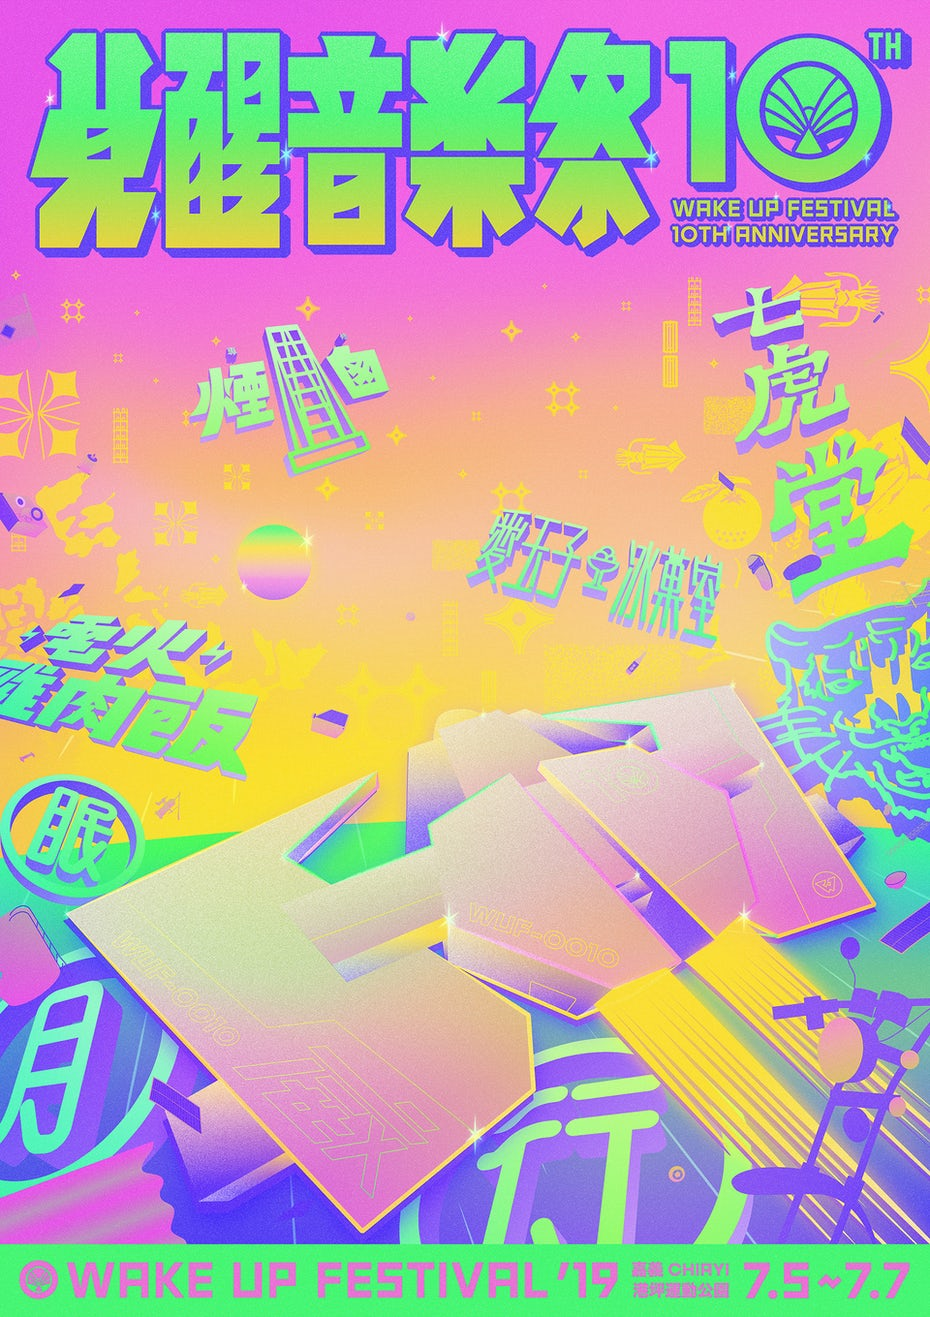 Graphic design trends 2020: Neon colored Japanese poster design